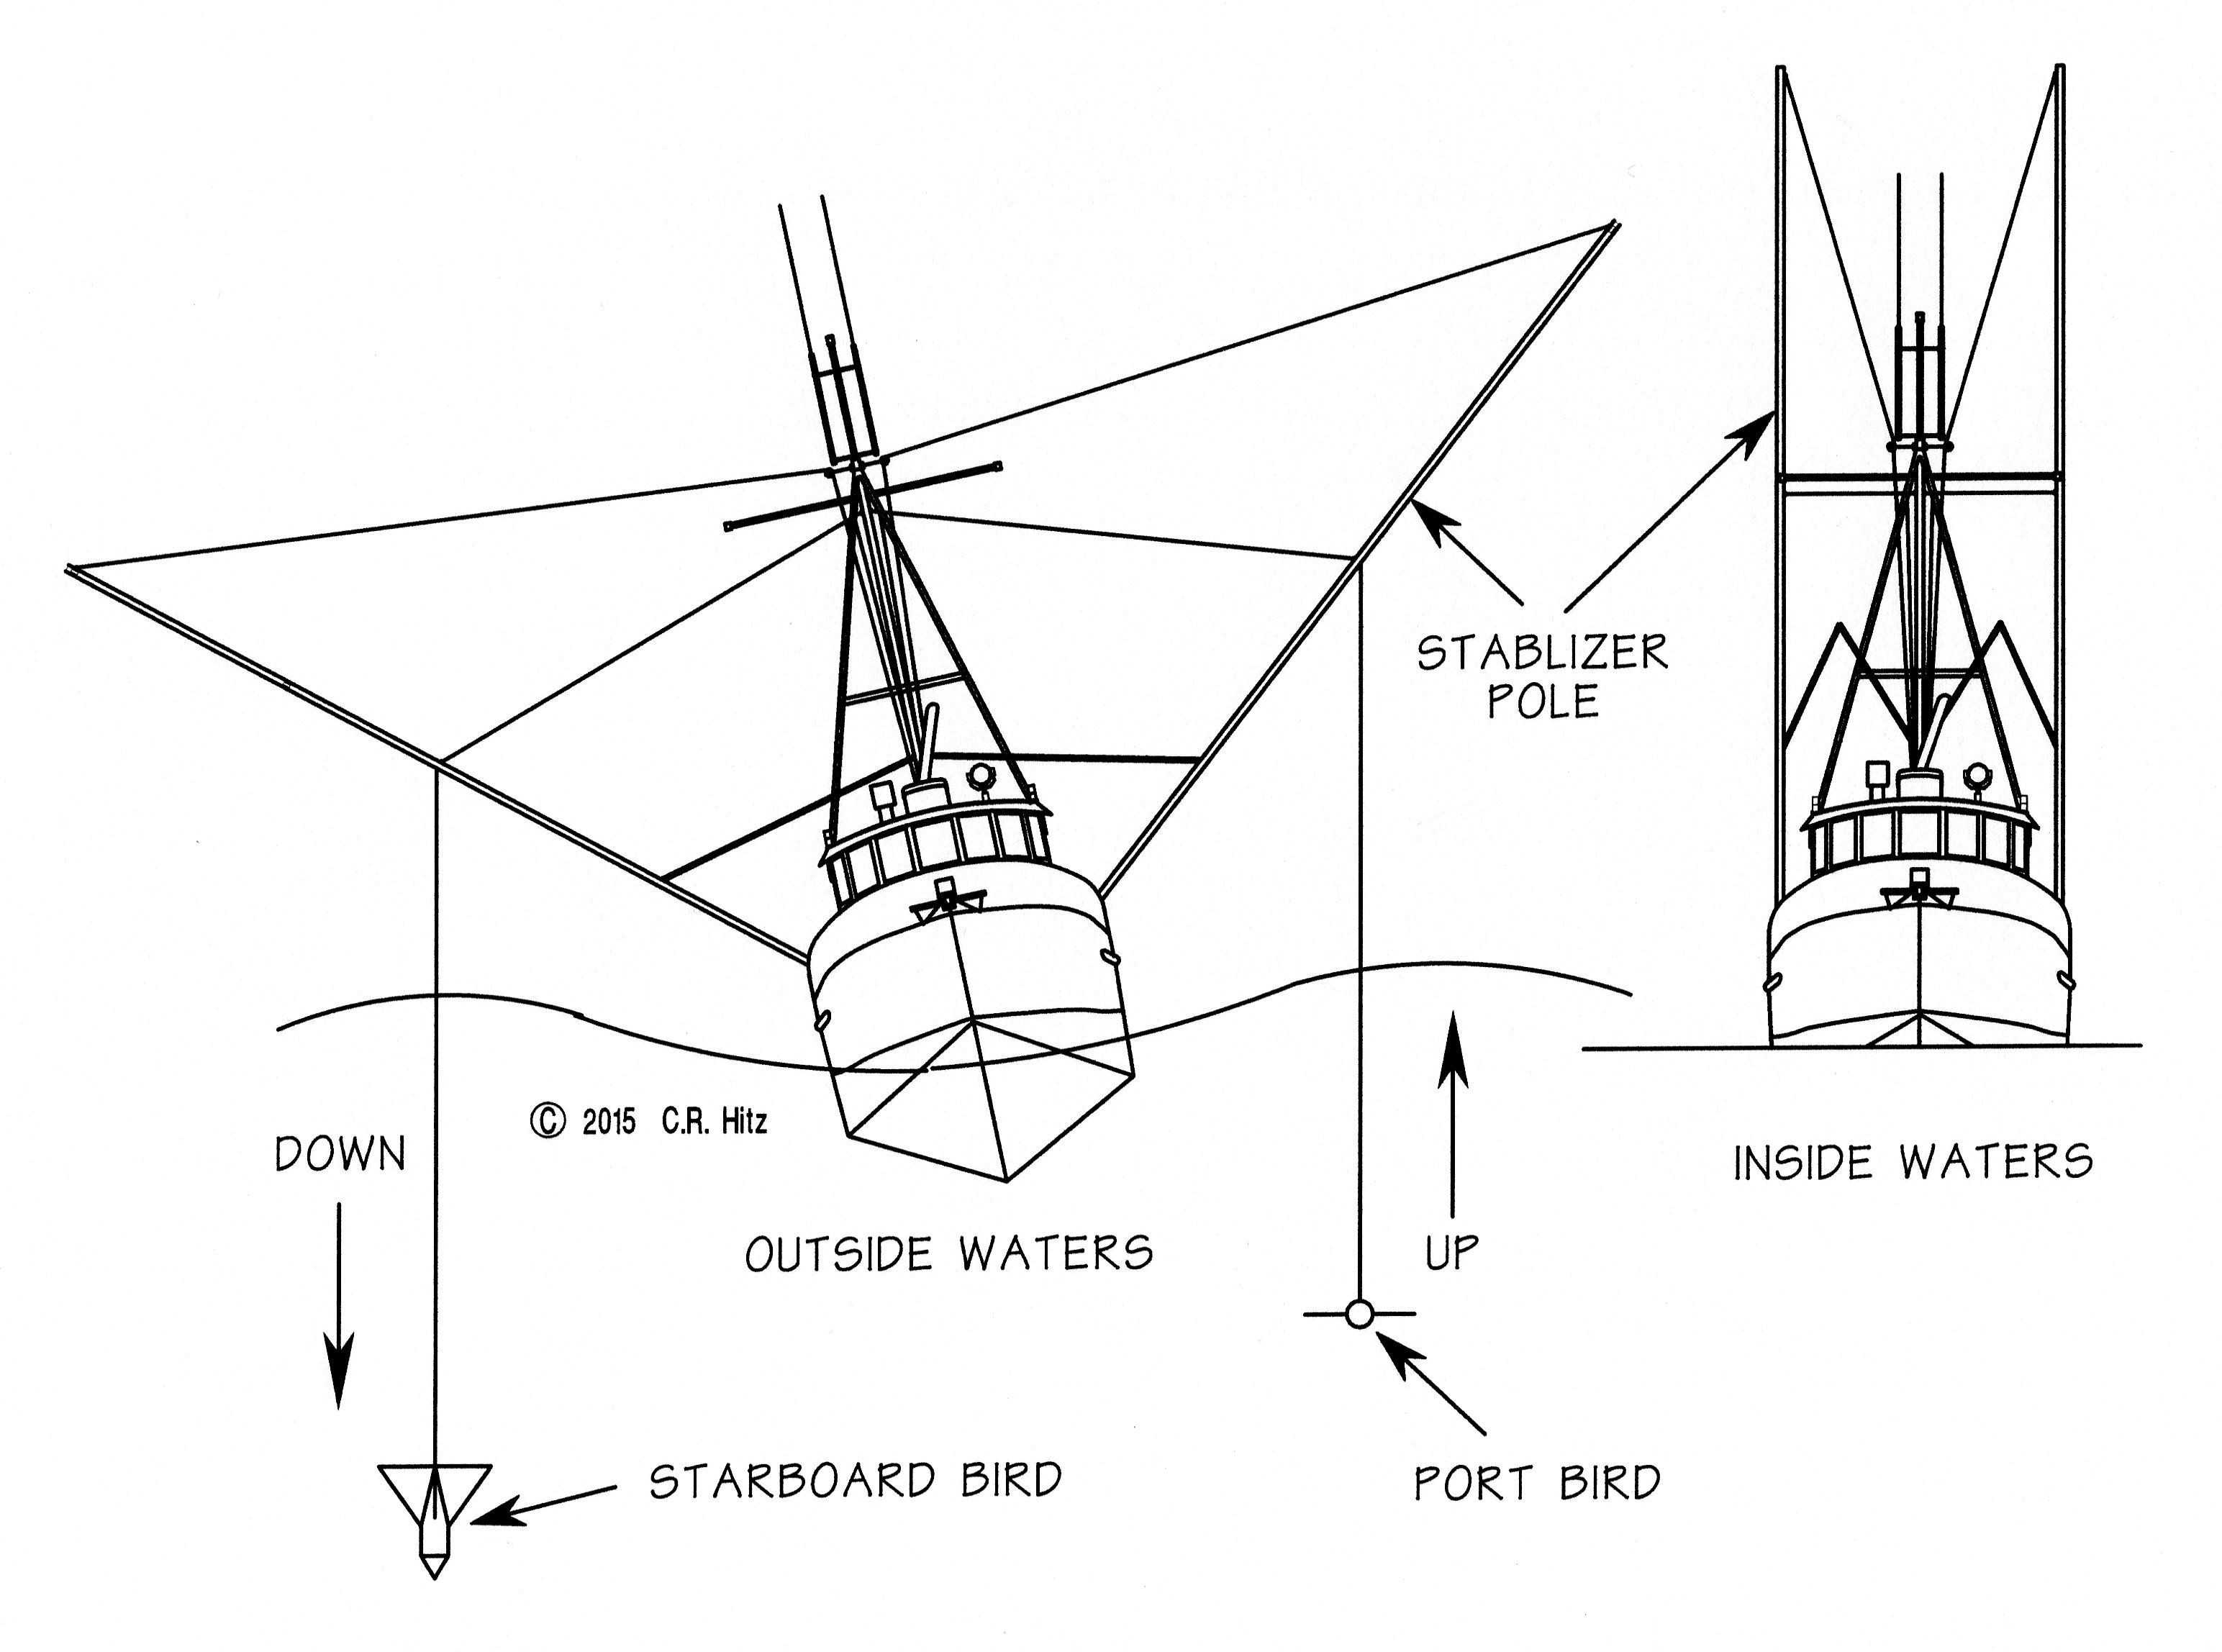 Commercial Fishing Boat Diagram Ships And Boat Diagram ...